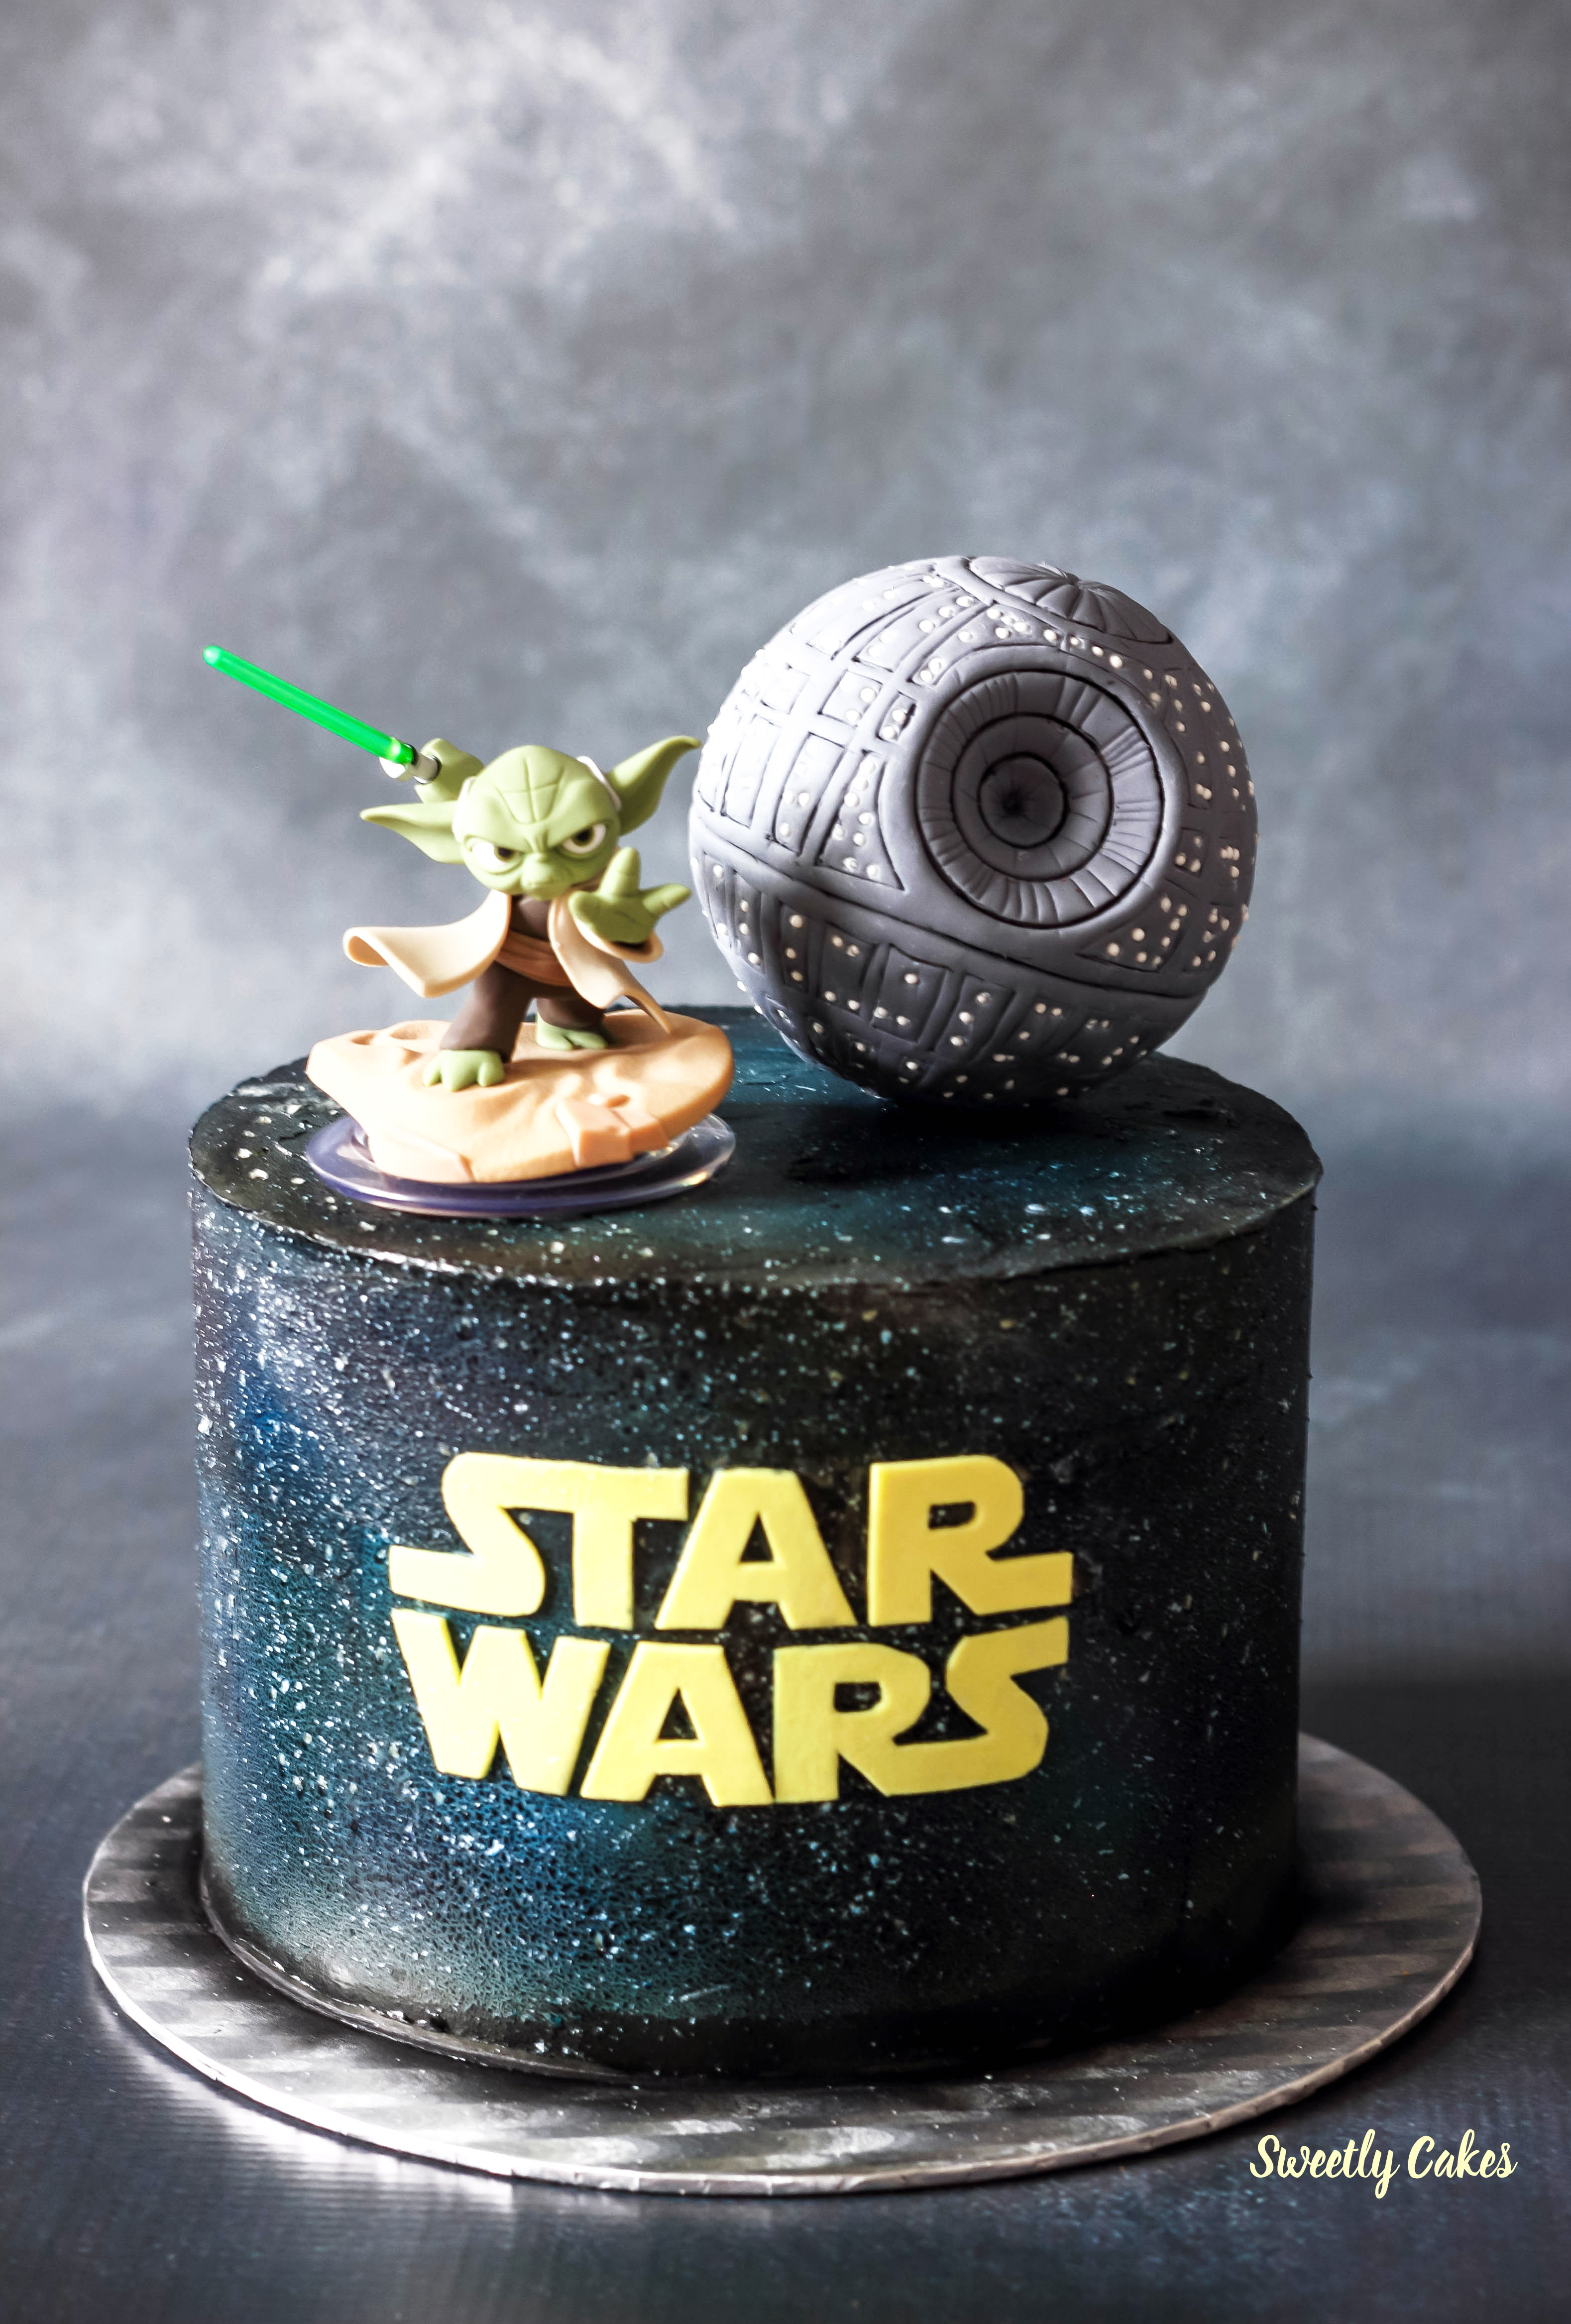 Gateau piece montee star wars